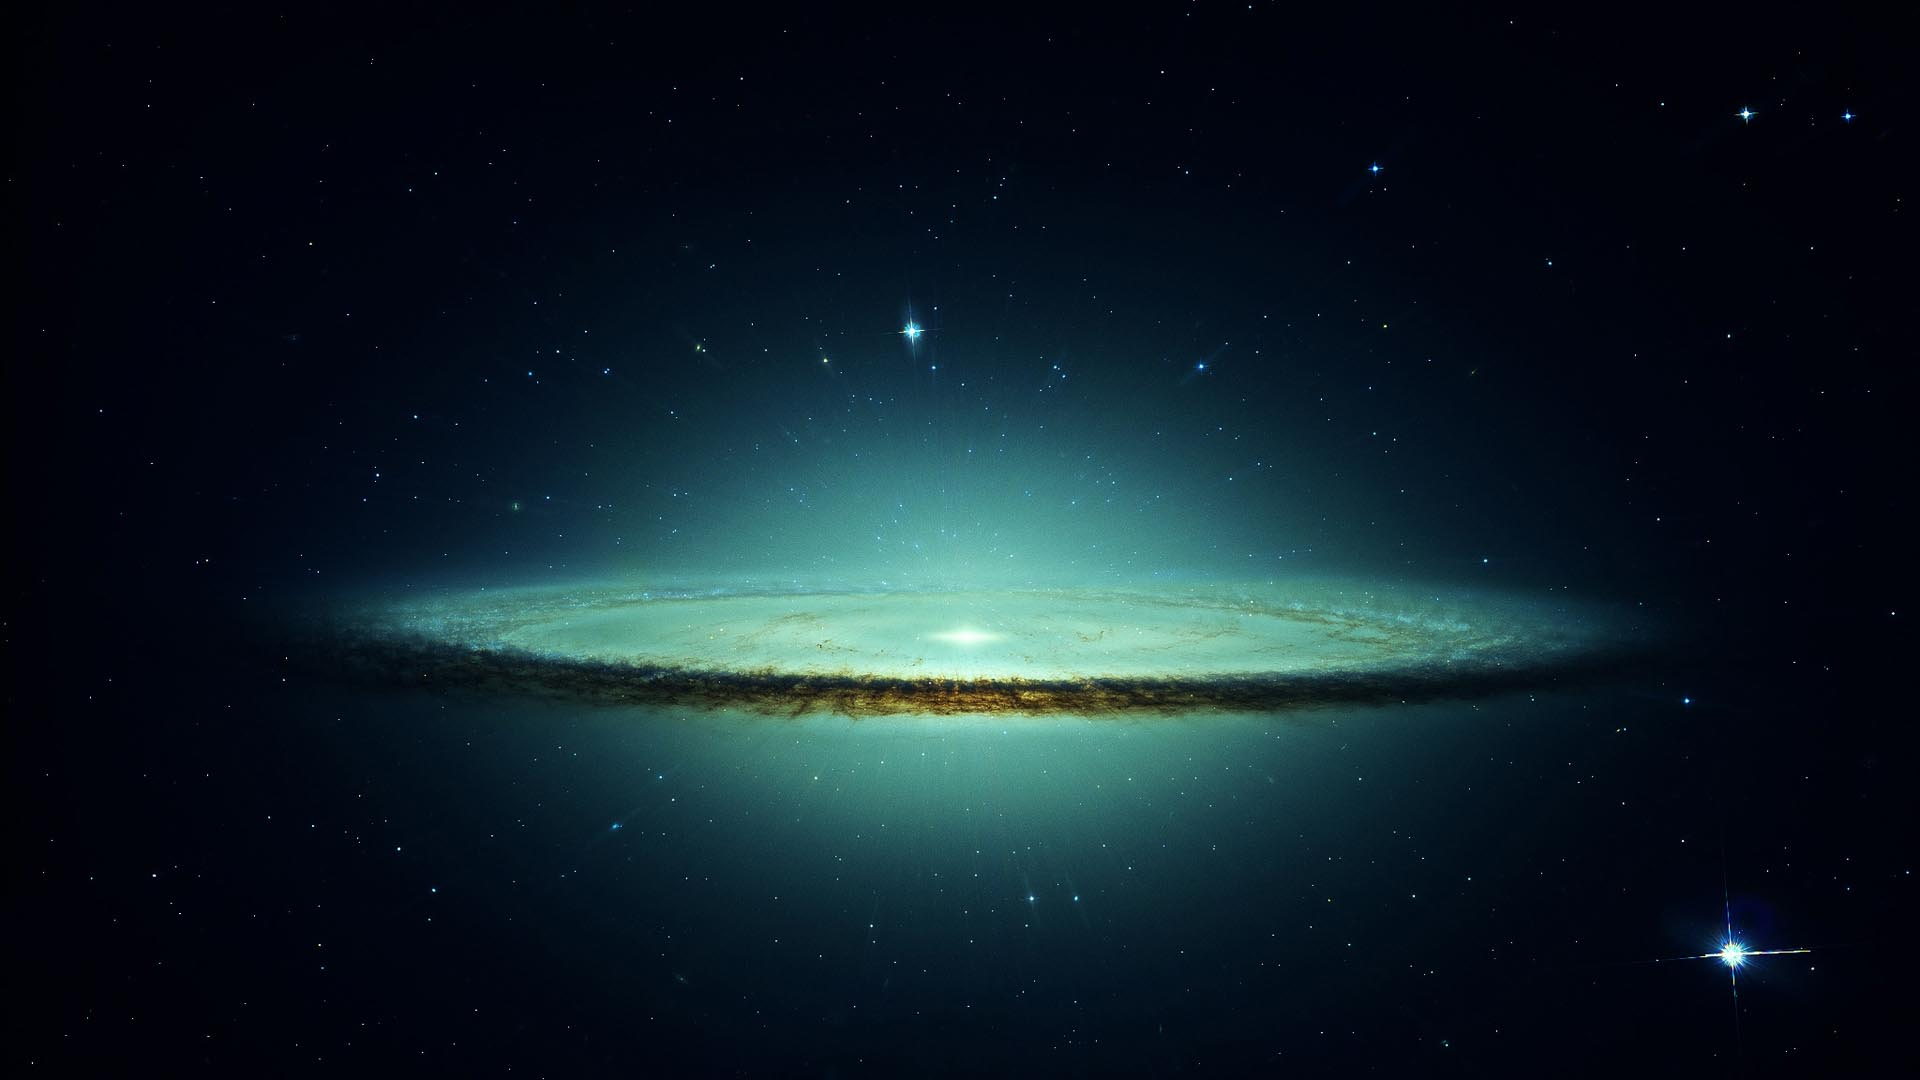 Galaxy HD Wallpaper FullHDWpp   Full HD Wallpapers 1920x1080 1920x1080